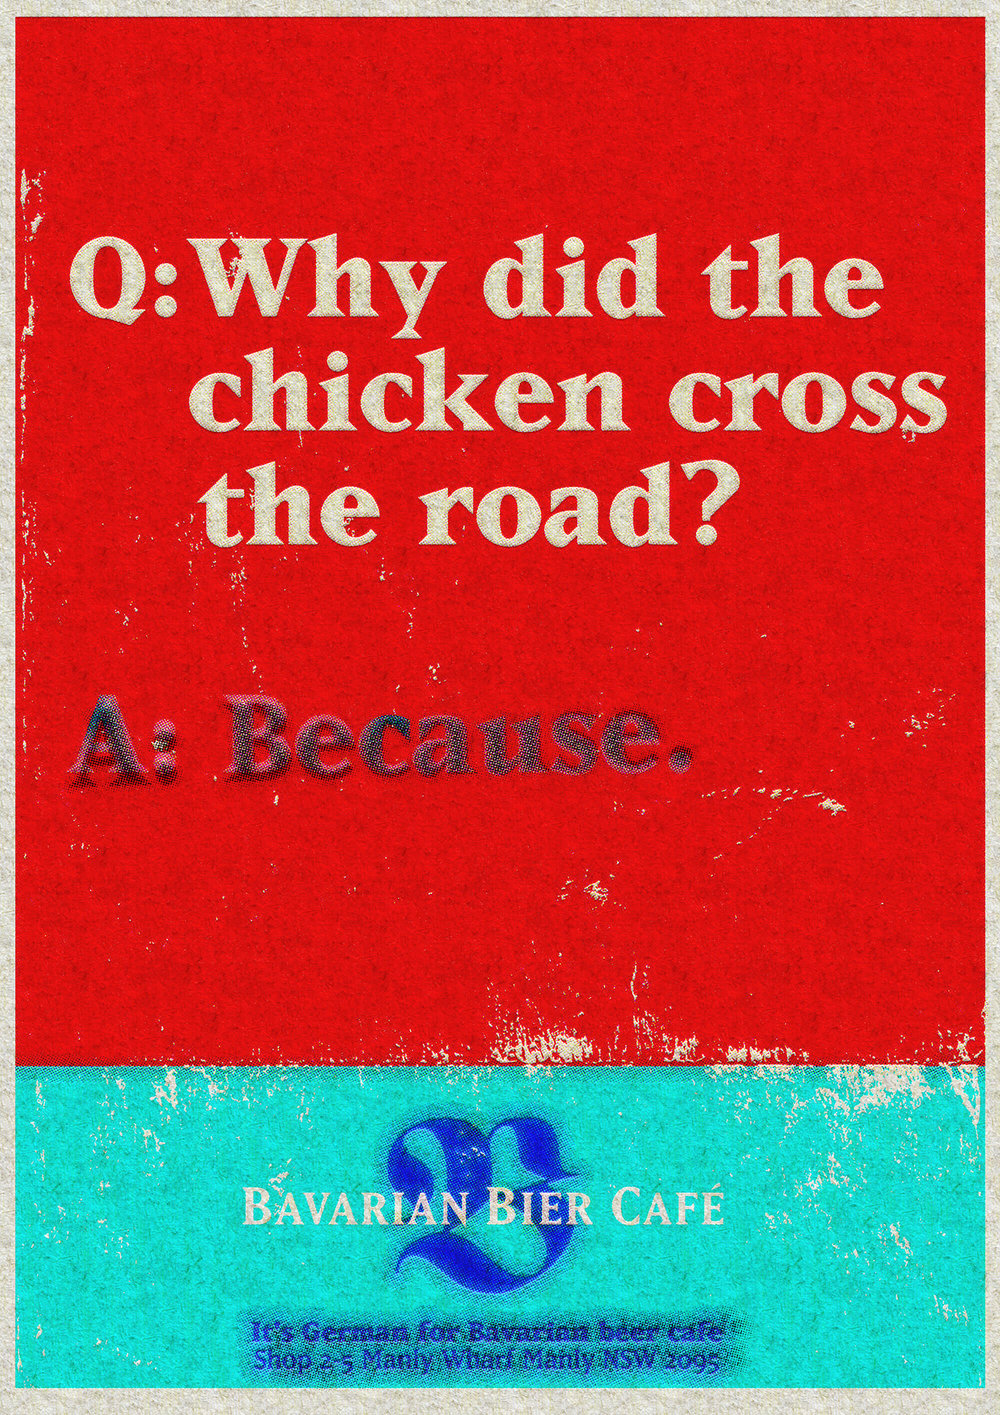 Bavarian Bier Café: print Ad. Q: Why did the chicken cross the road? A: Because.